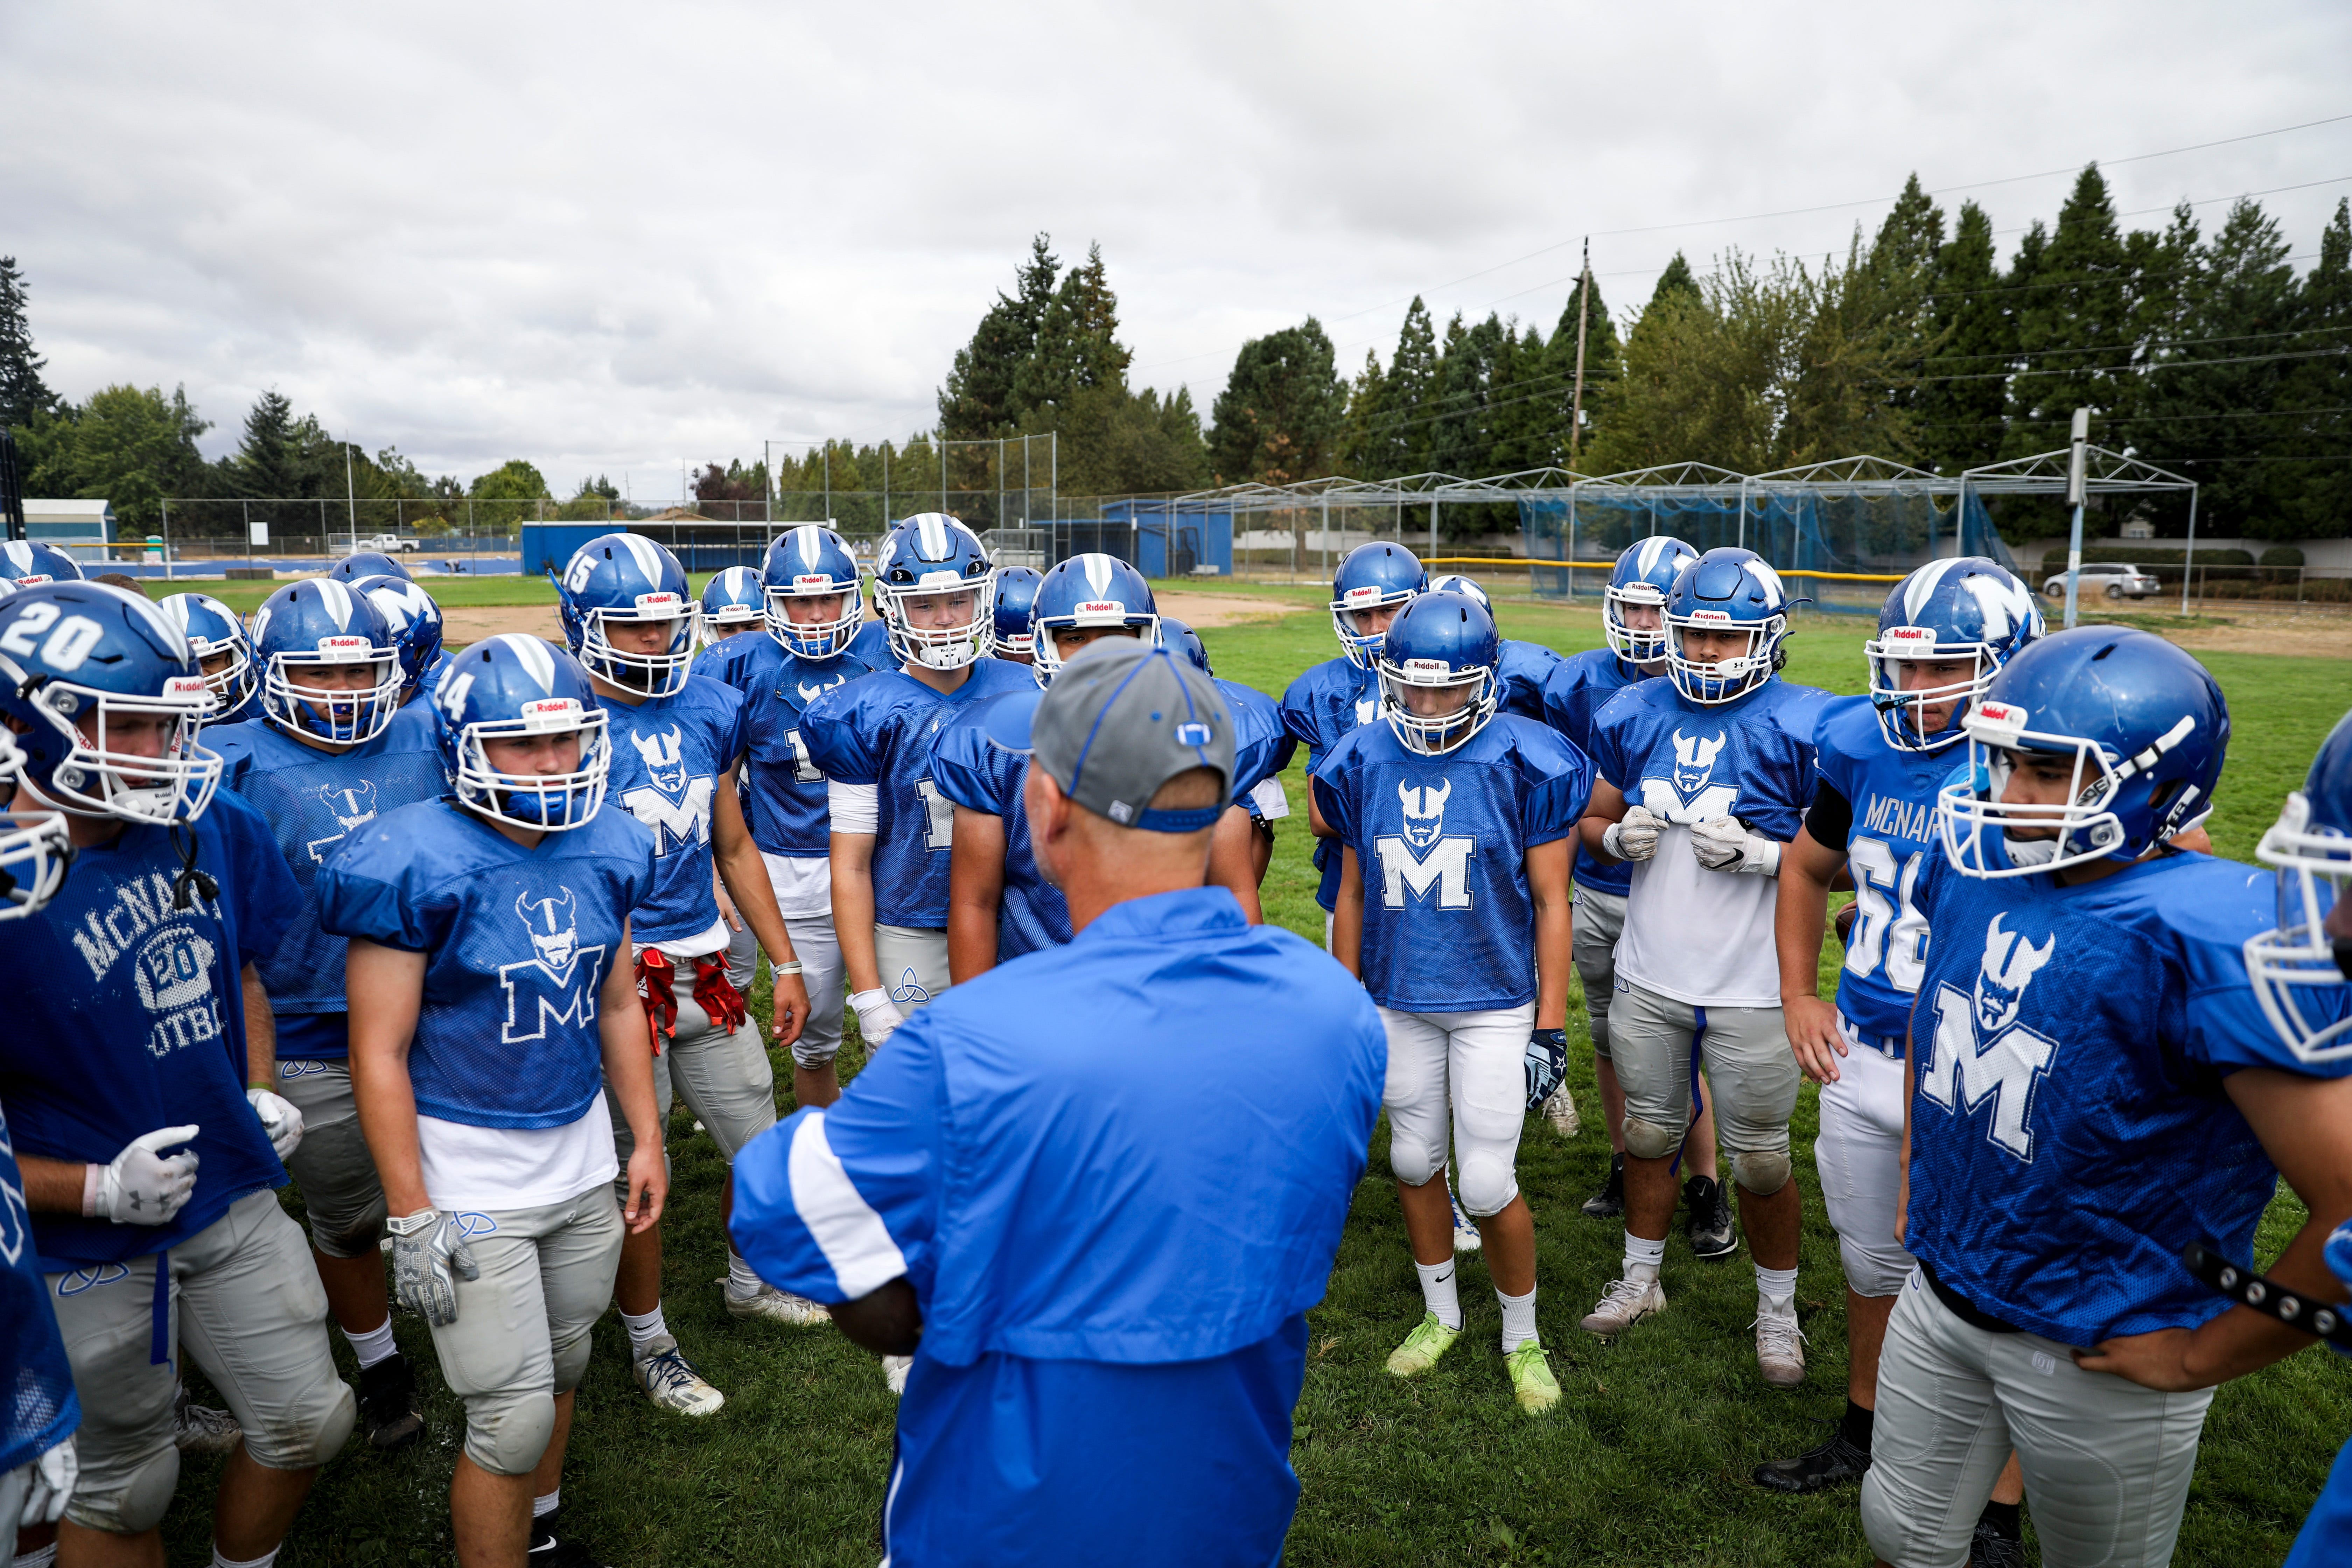 Who knew two-a-days would be welcome? High school football is back on the fall calendar